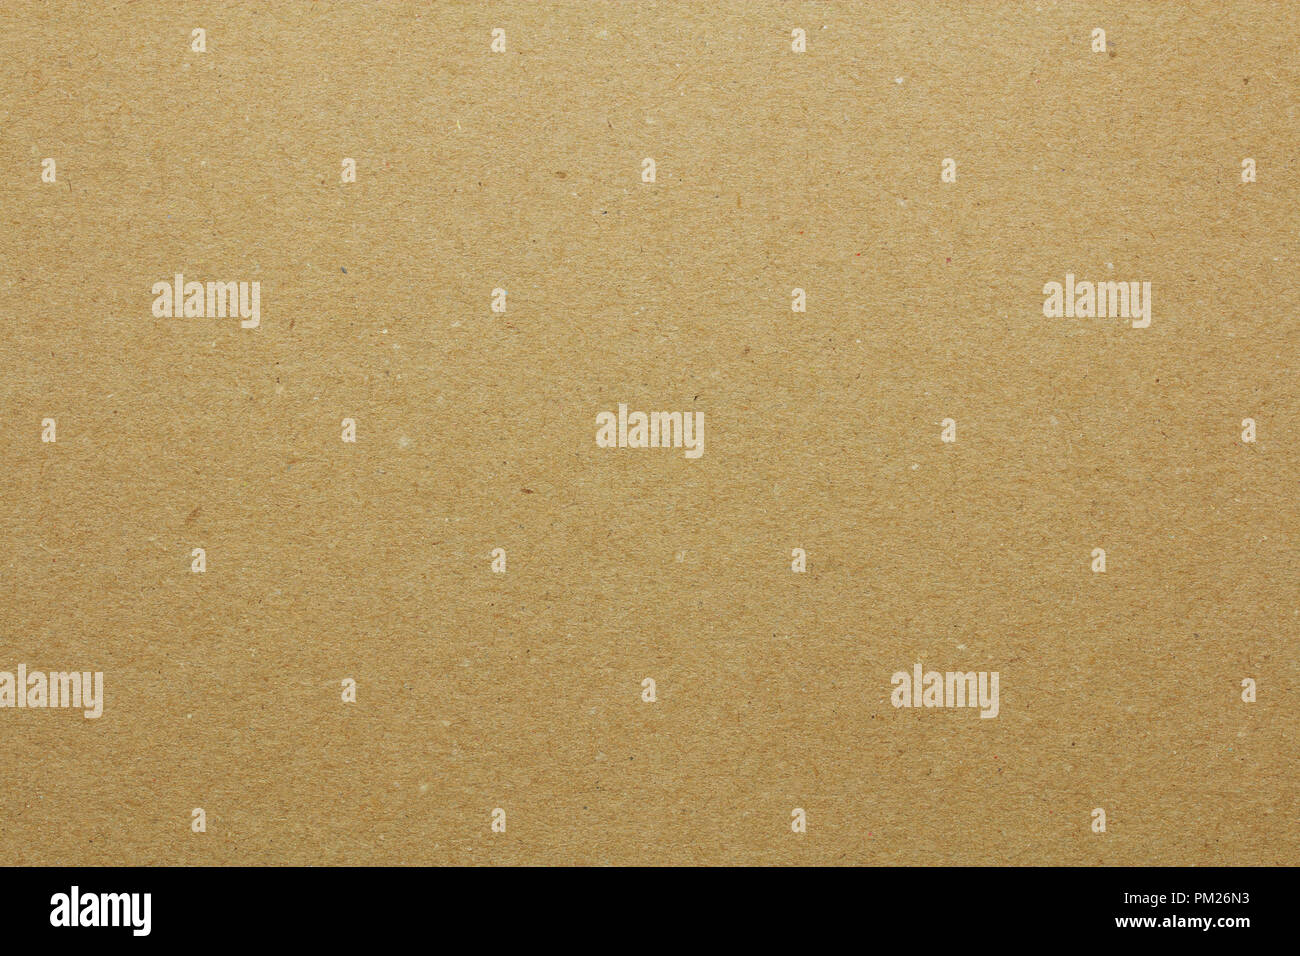 Brown Colored Craft Paper Texture Or Vintage Background Stock Photo